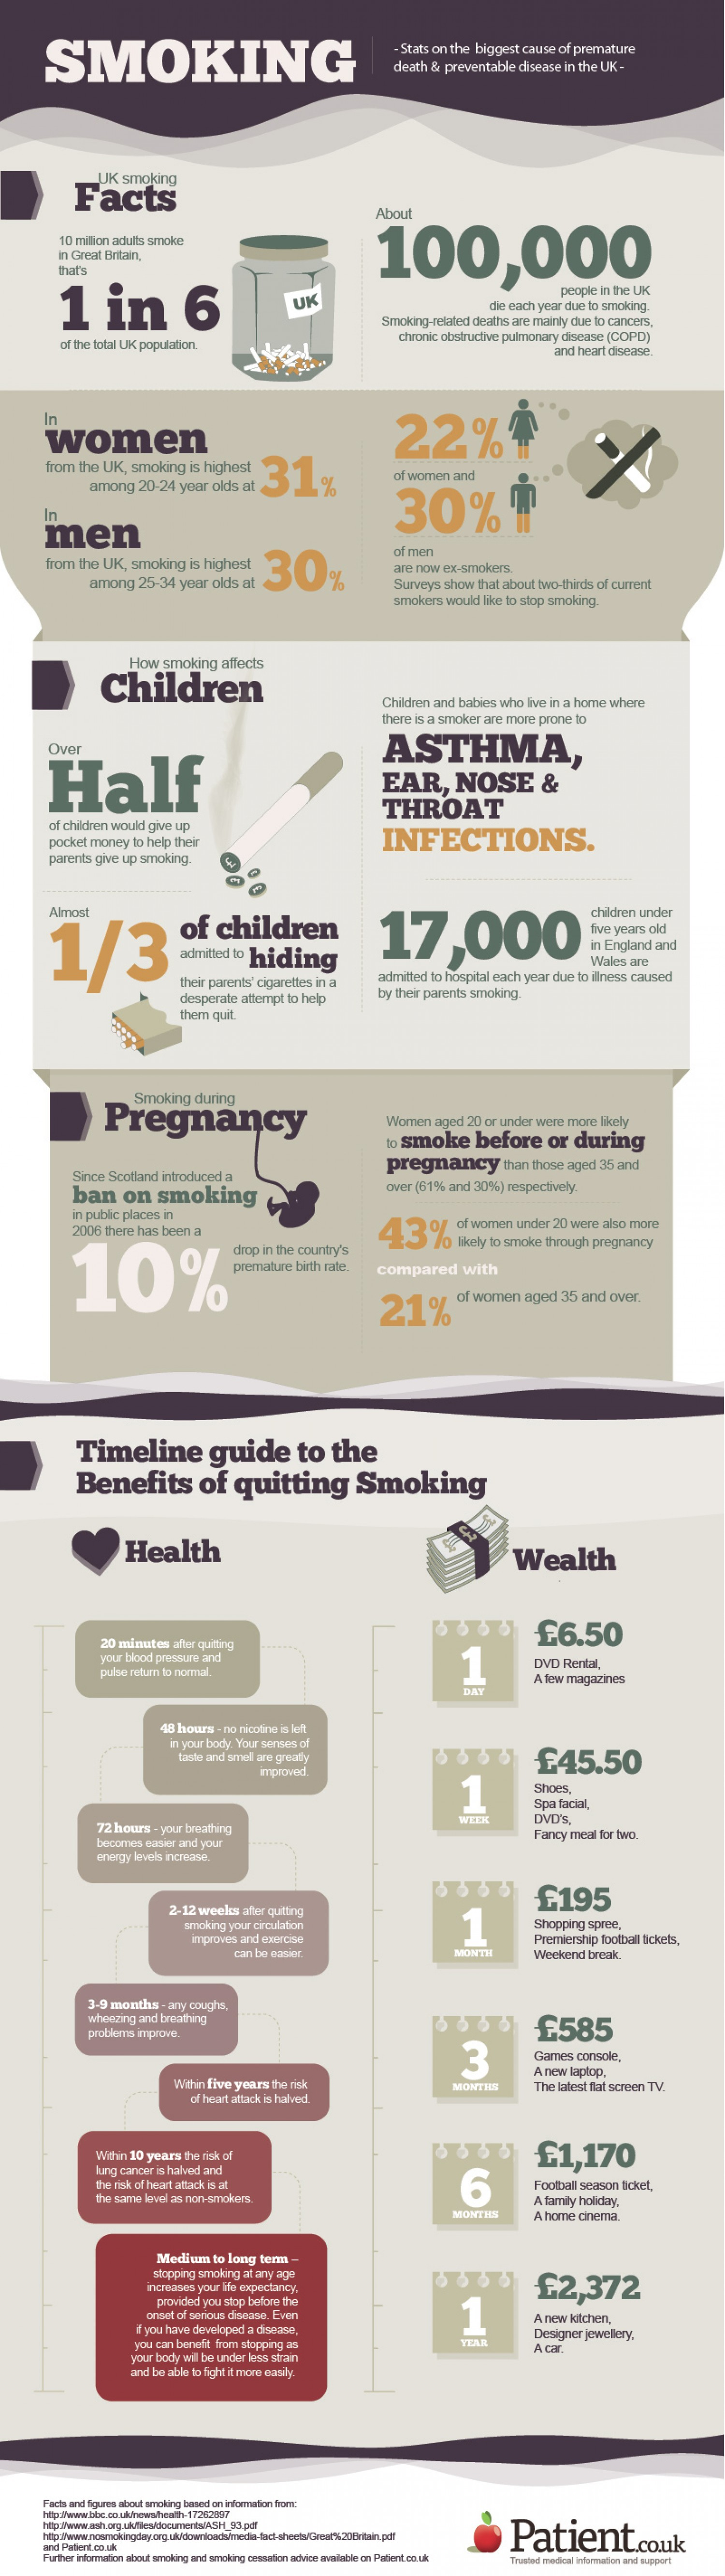 11. Smoking in UK